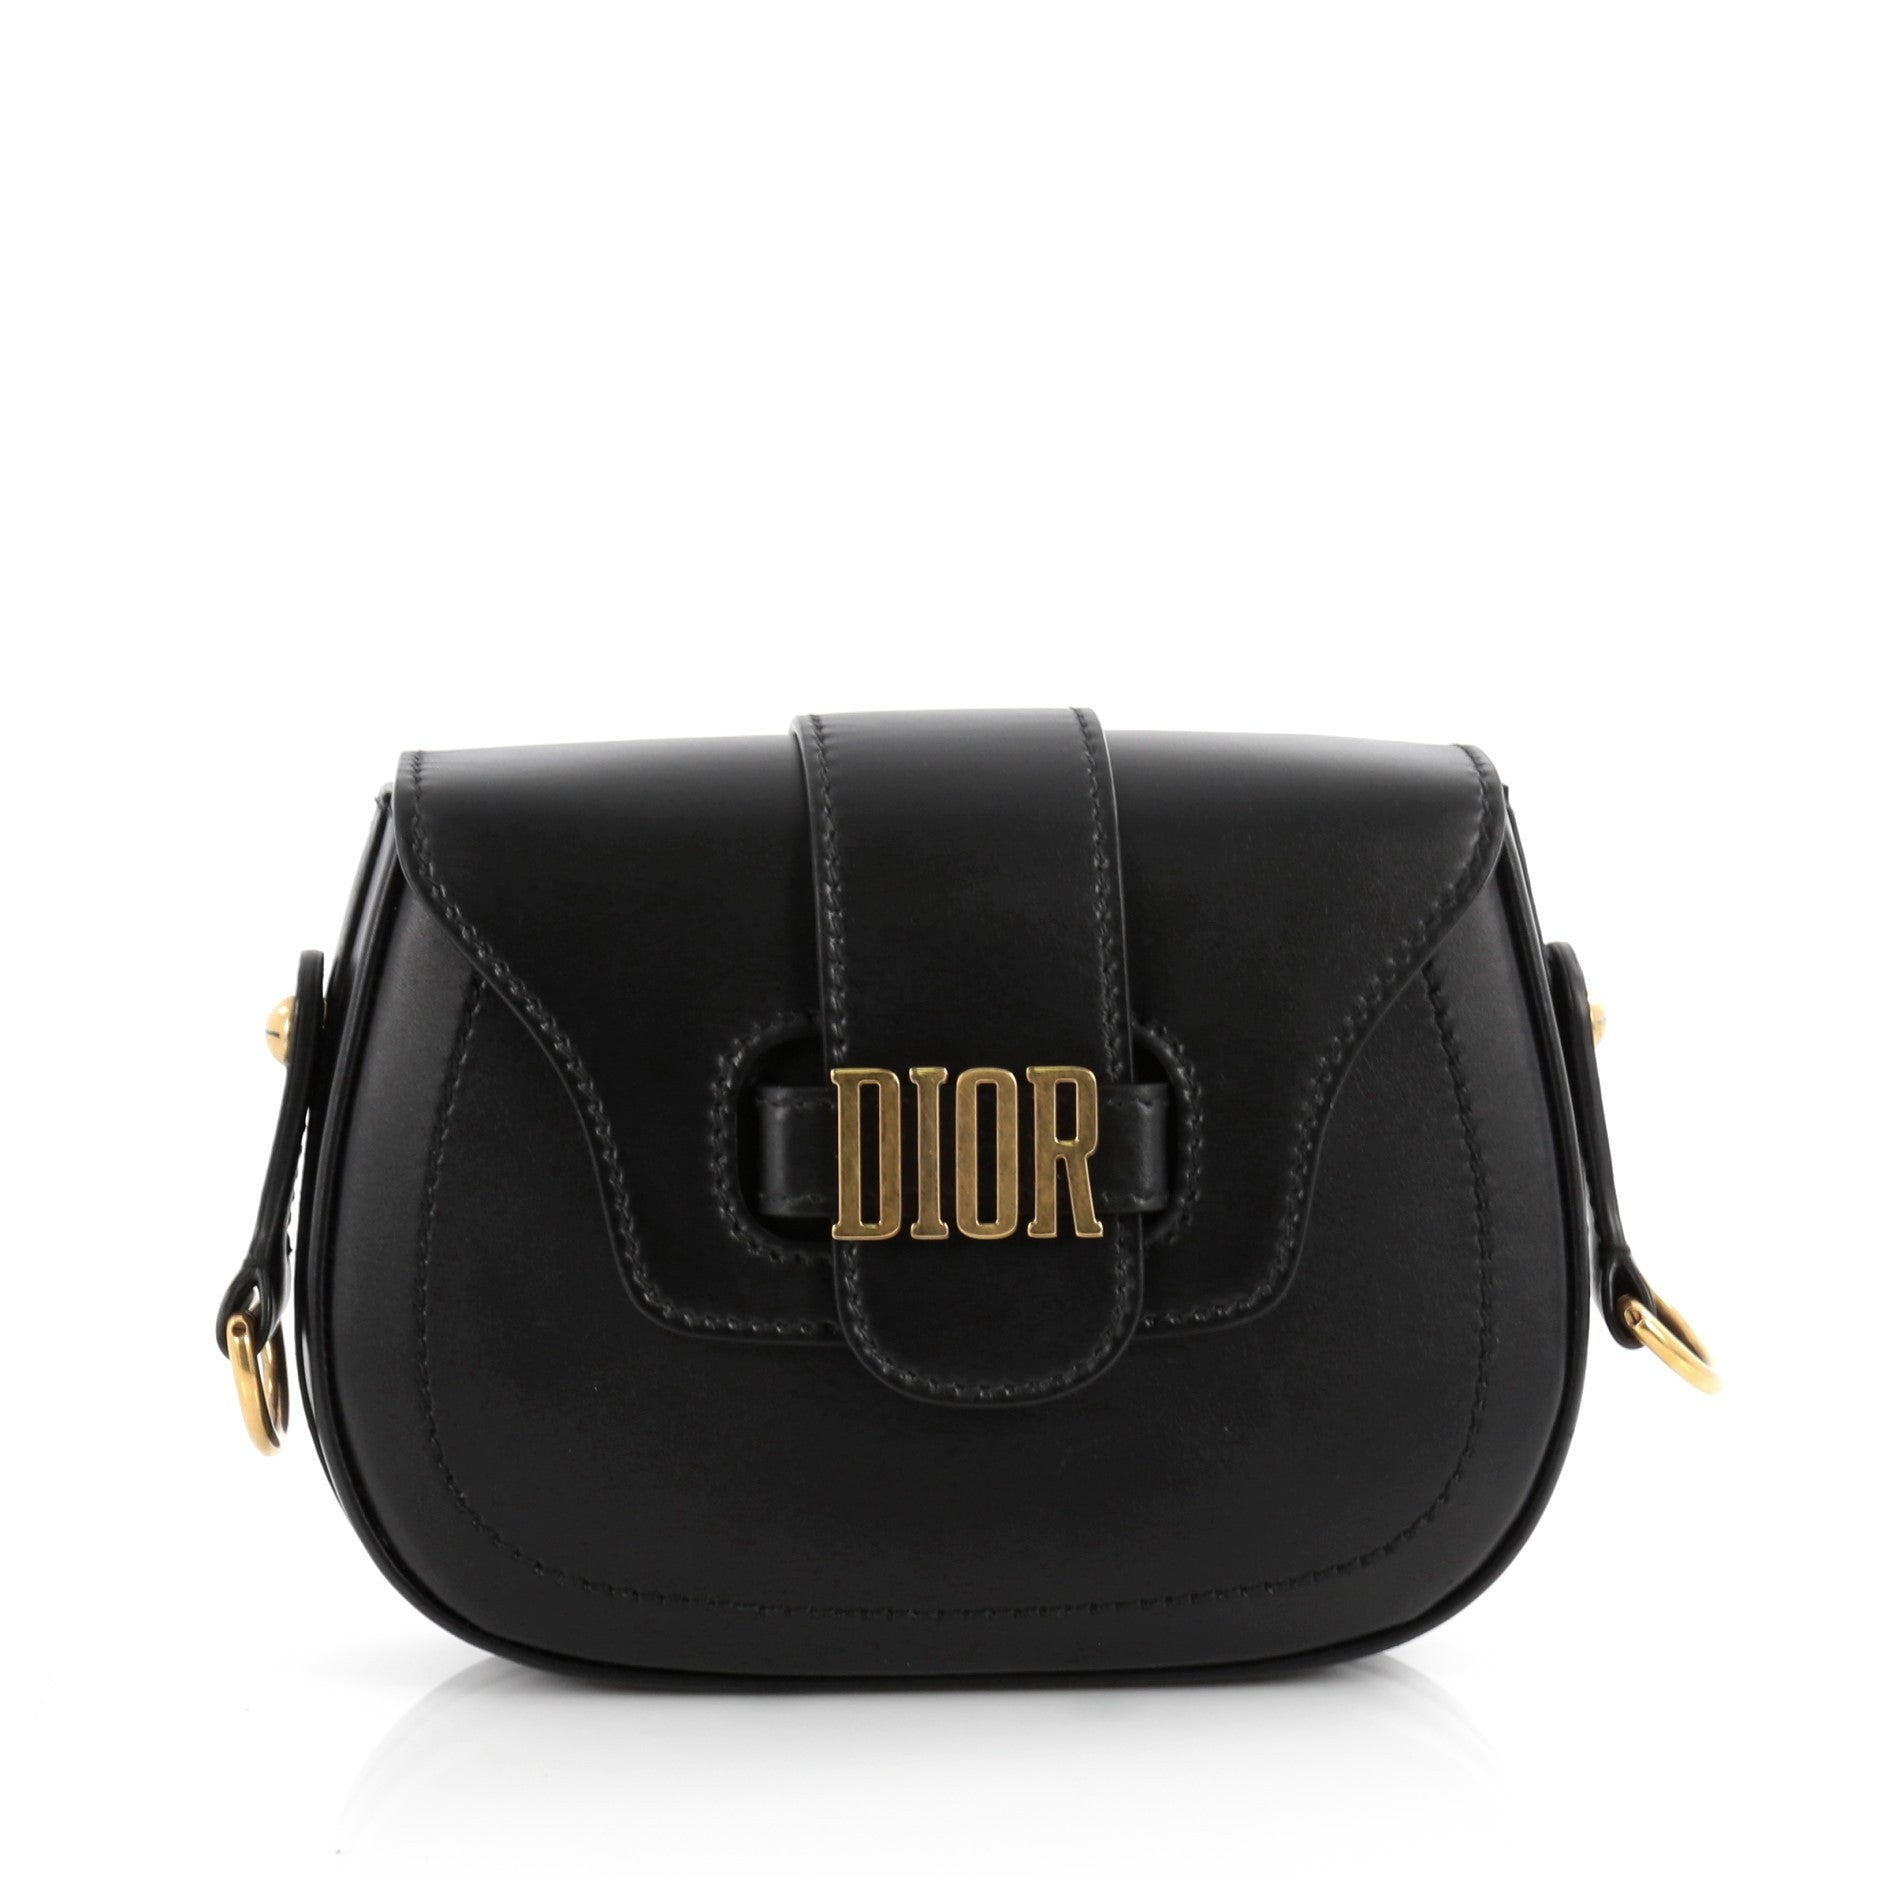 708ab121ab56 20886-01_Christian_Dior_D-Fence_Saddle_Bag_Leather_2D_0003.jpg?v=1499781152